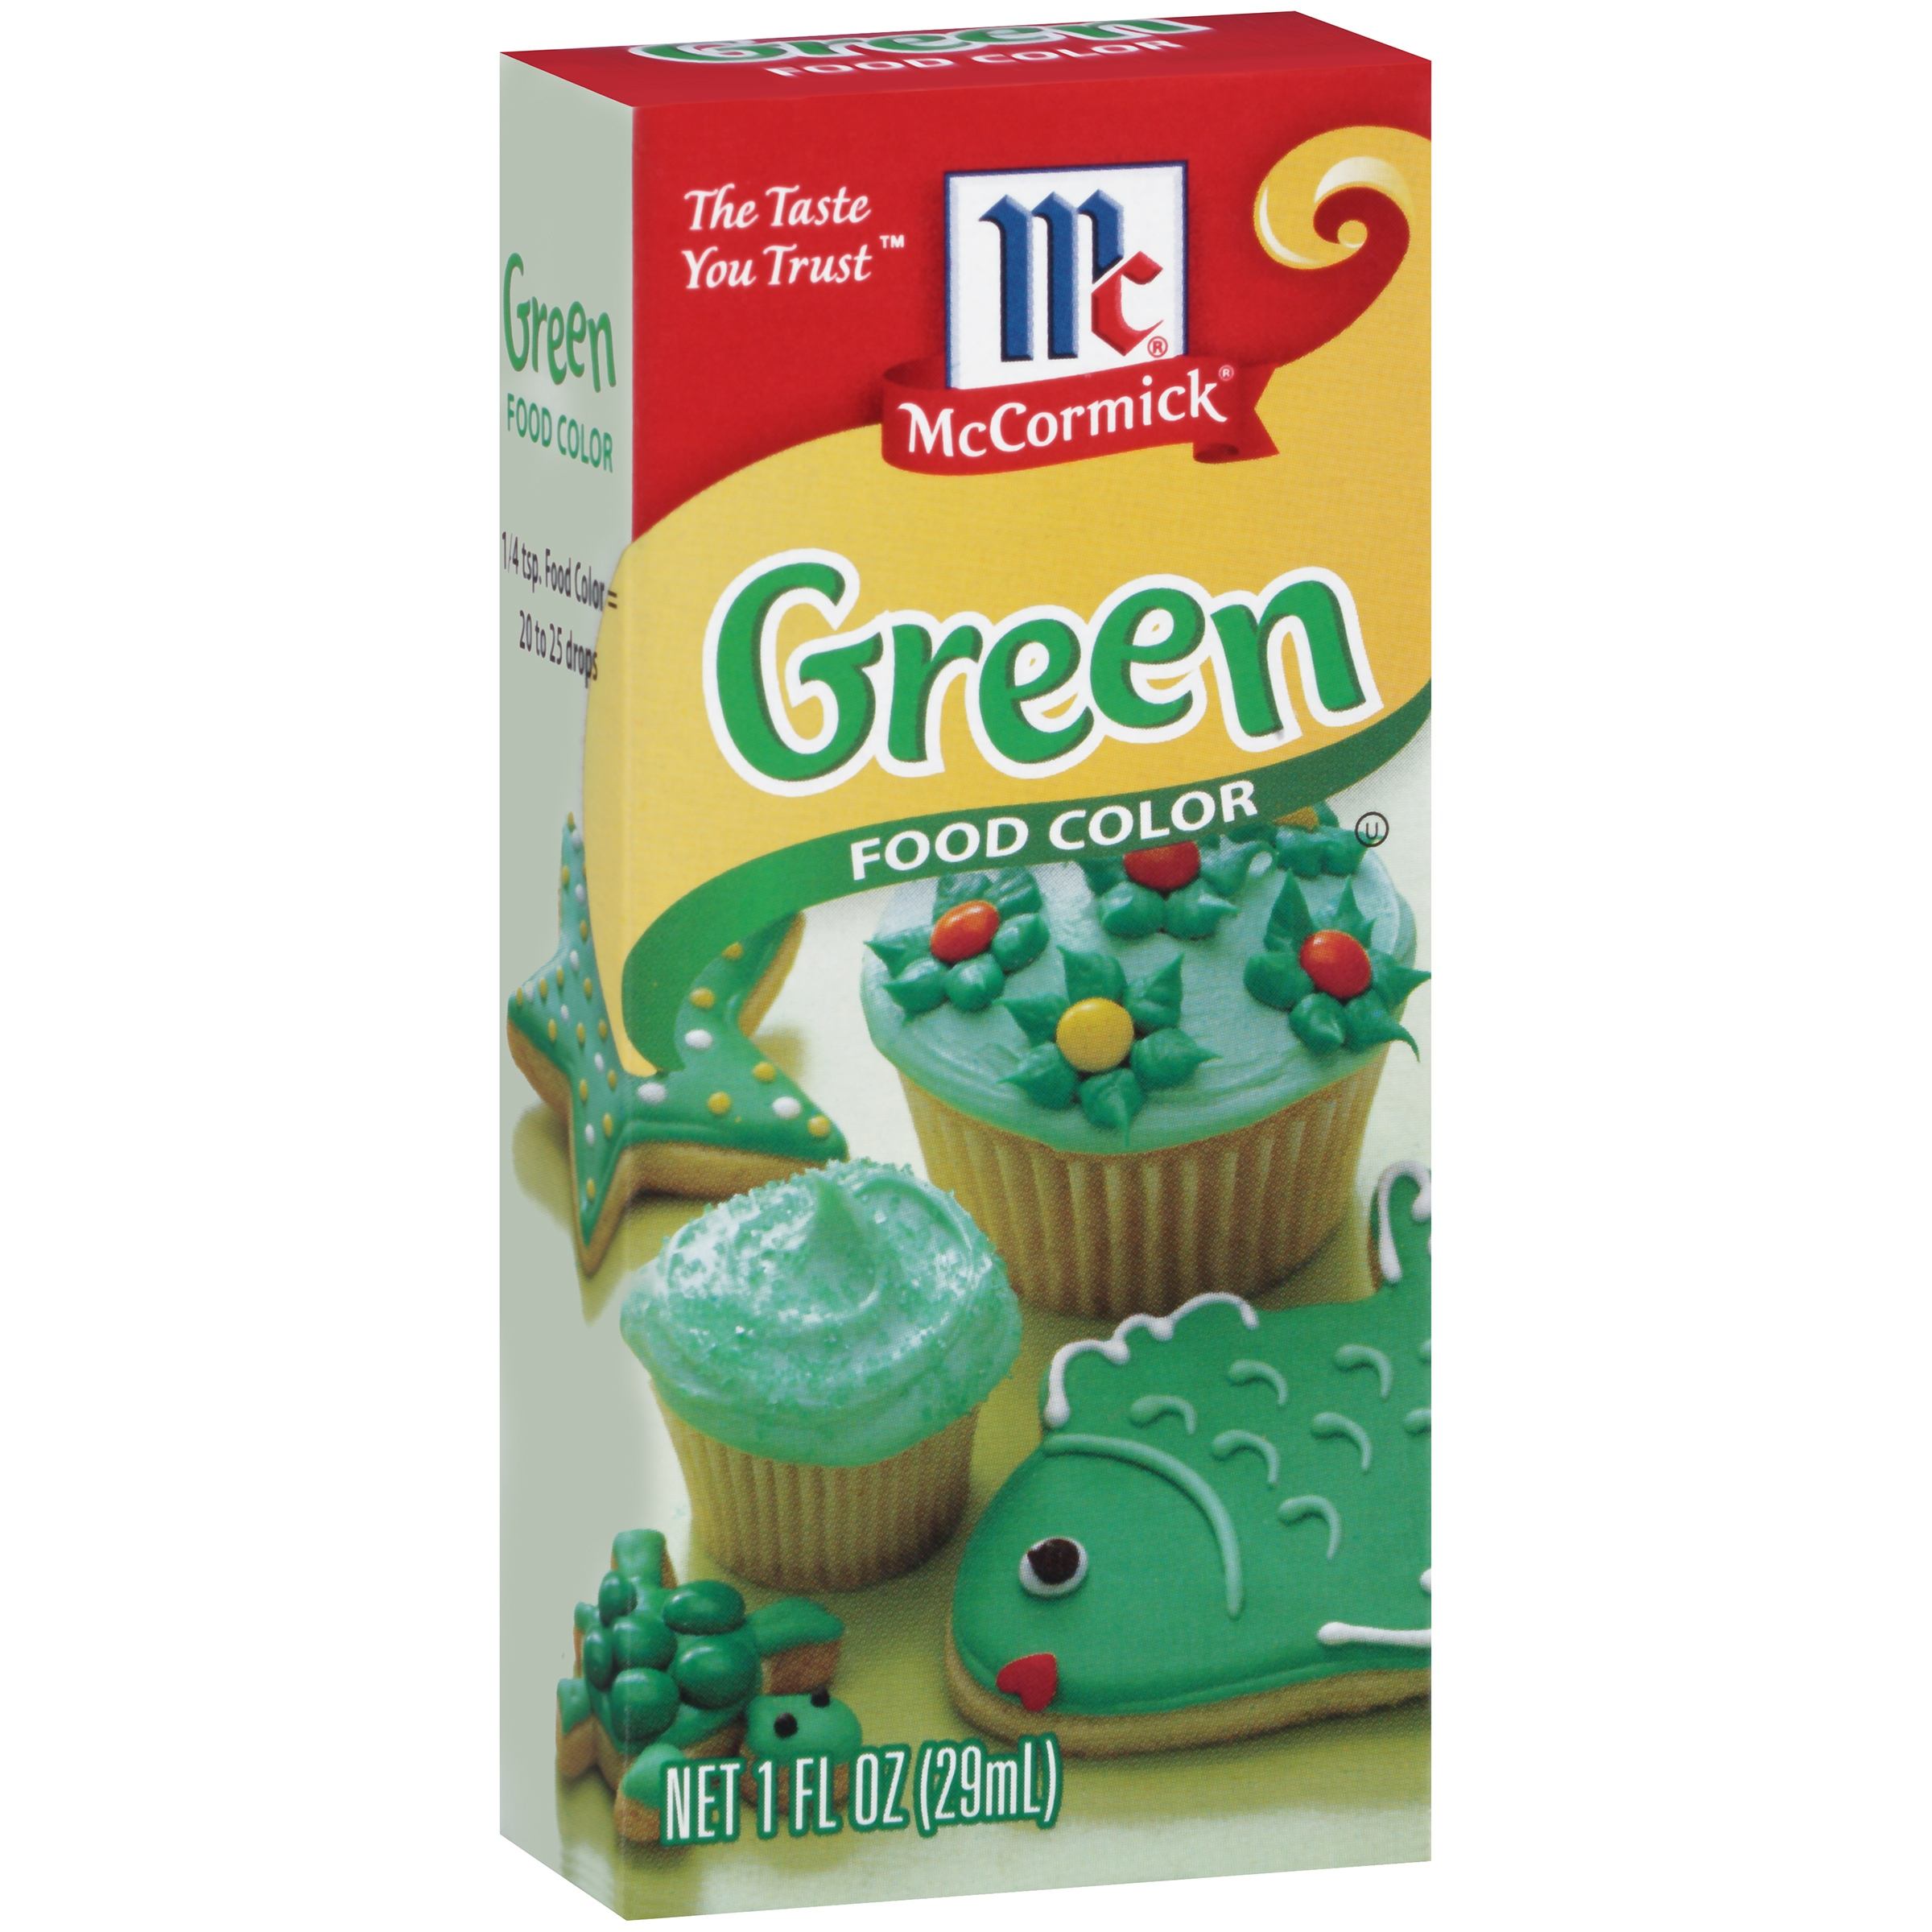 McCormick® Green Food Color, 1 fl oz - Walmart.com